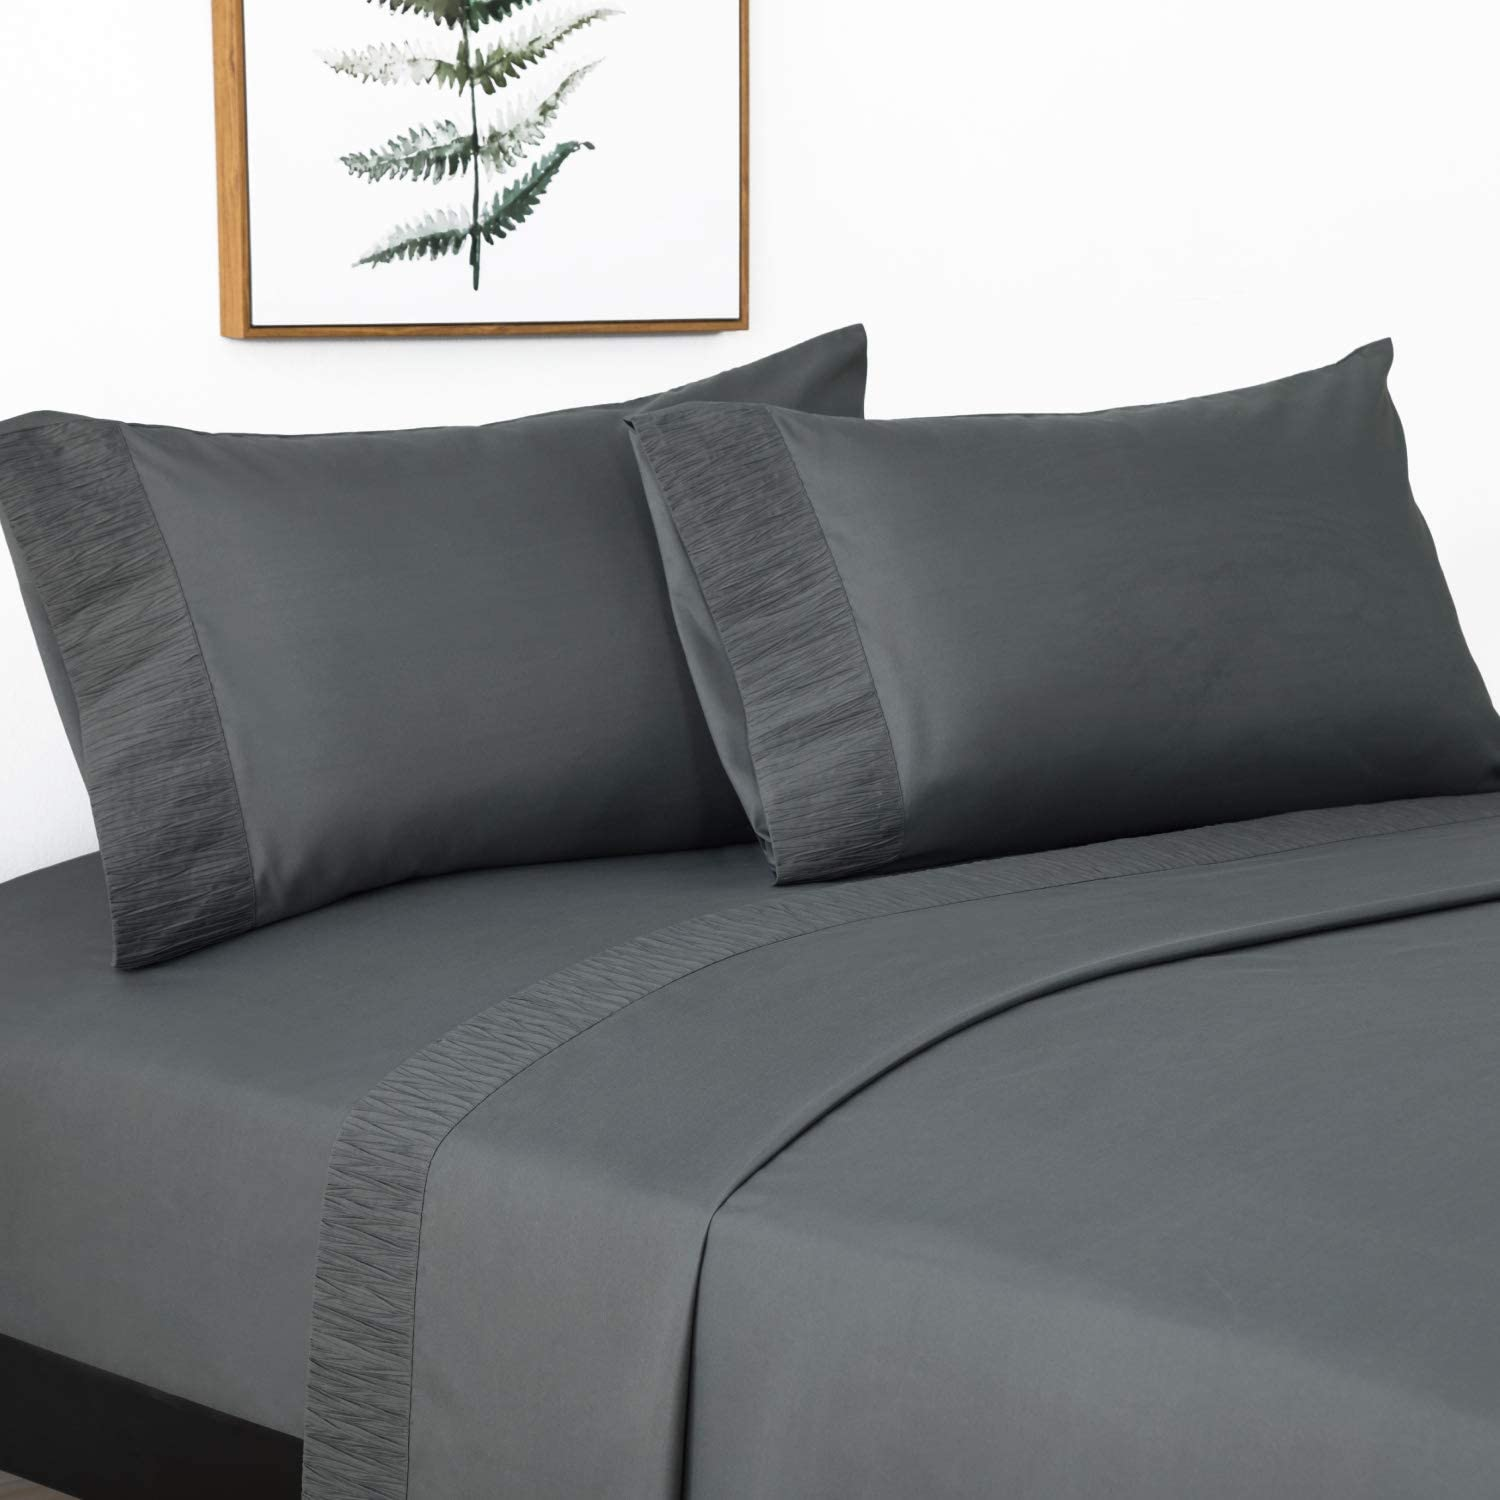 Queen, Black Wrinkle /& Fade Resistant Sfoothome Queen Sheets Set 1800 Series Bedding Set Extra Deep Pocket Hypoallergenic Sheet /& Pillow Case Set Black Hotel Luxury 4-Piece Bed Set